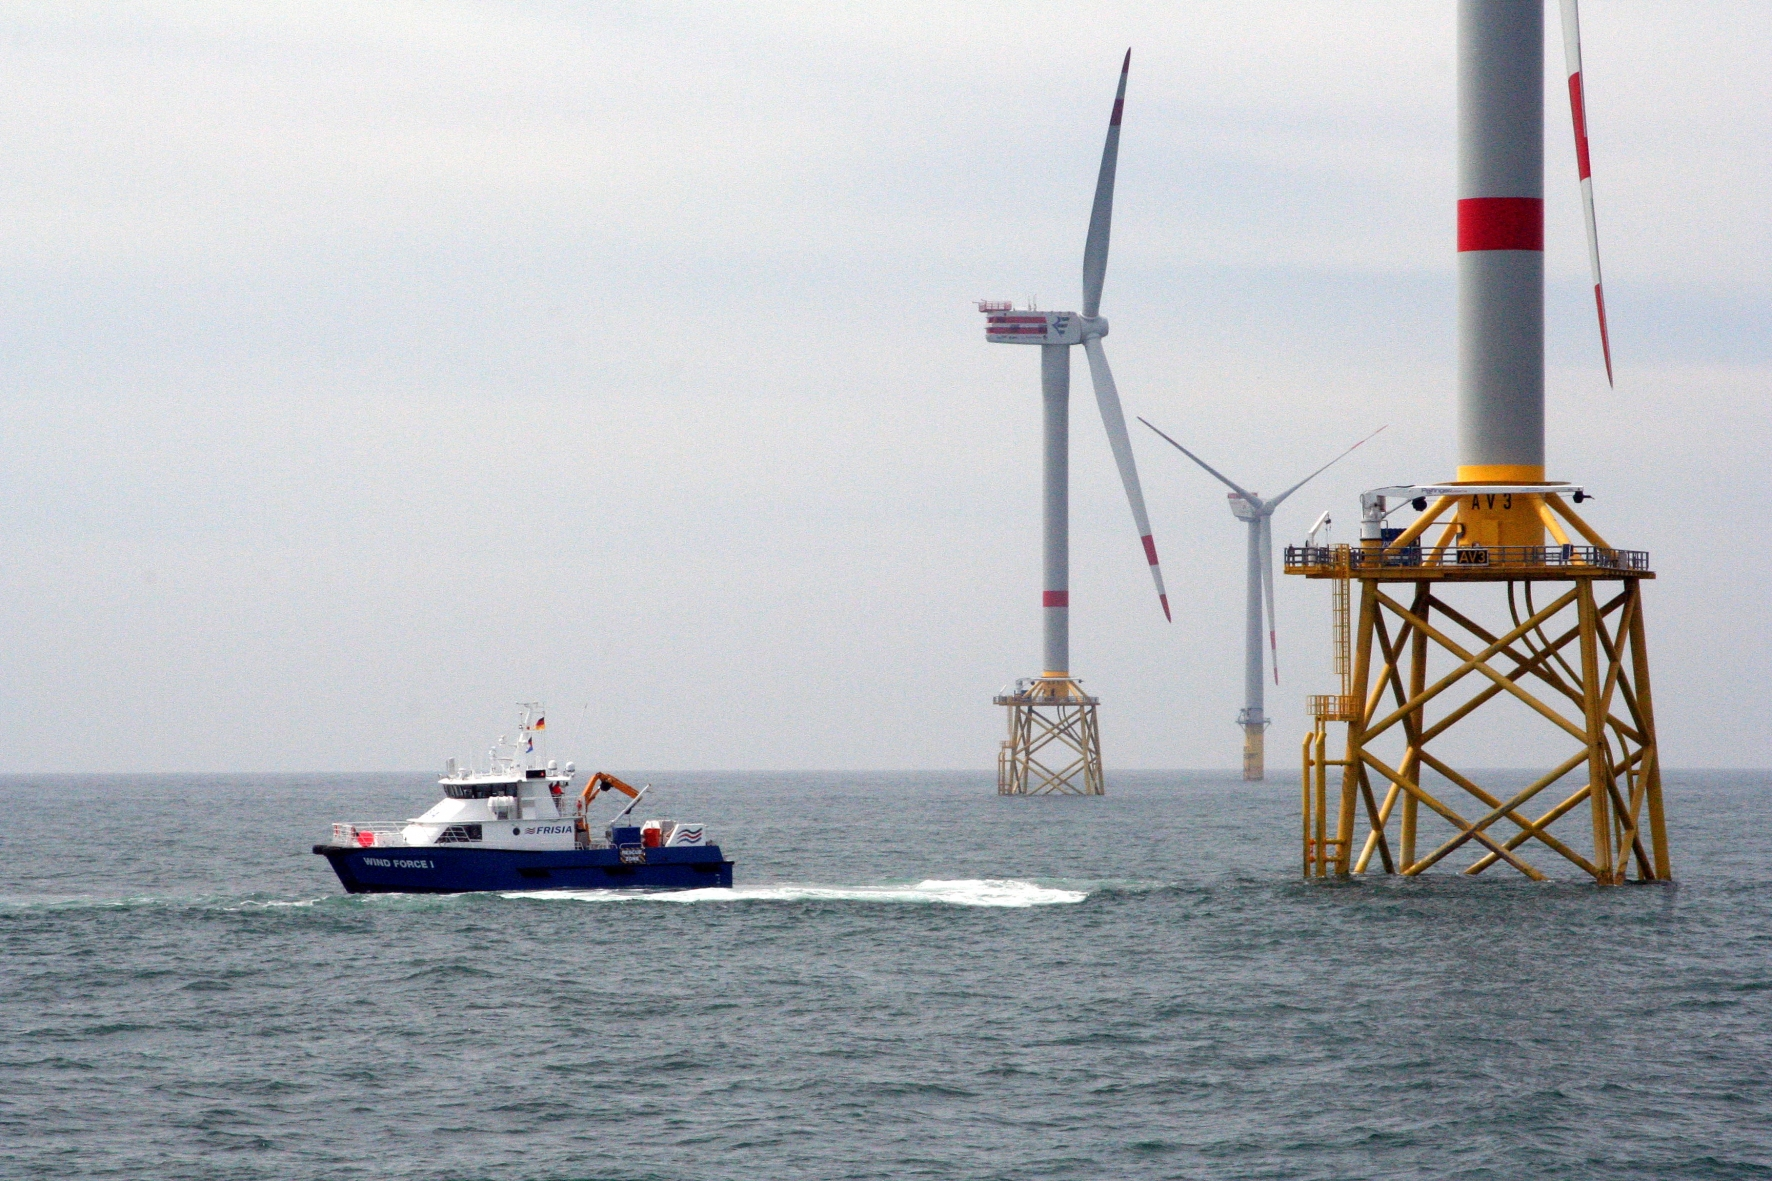 New Lobbying Group Formed by East Coast Fishing Industry to Address Wind Power Concerns